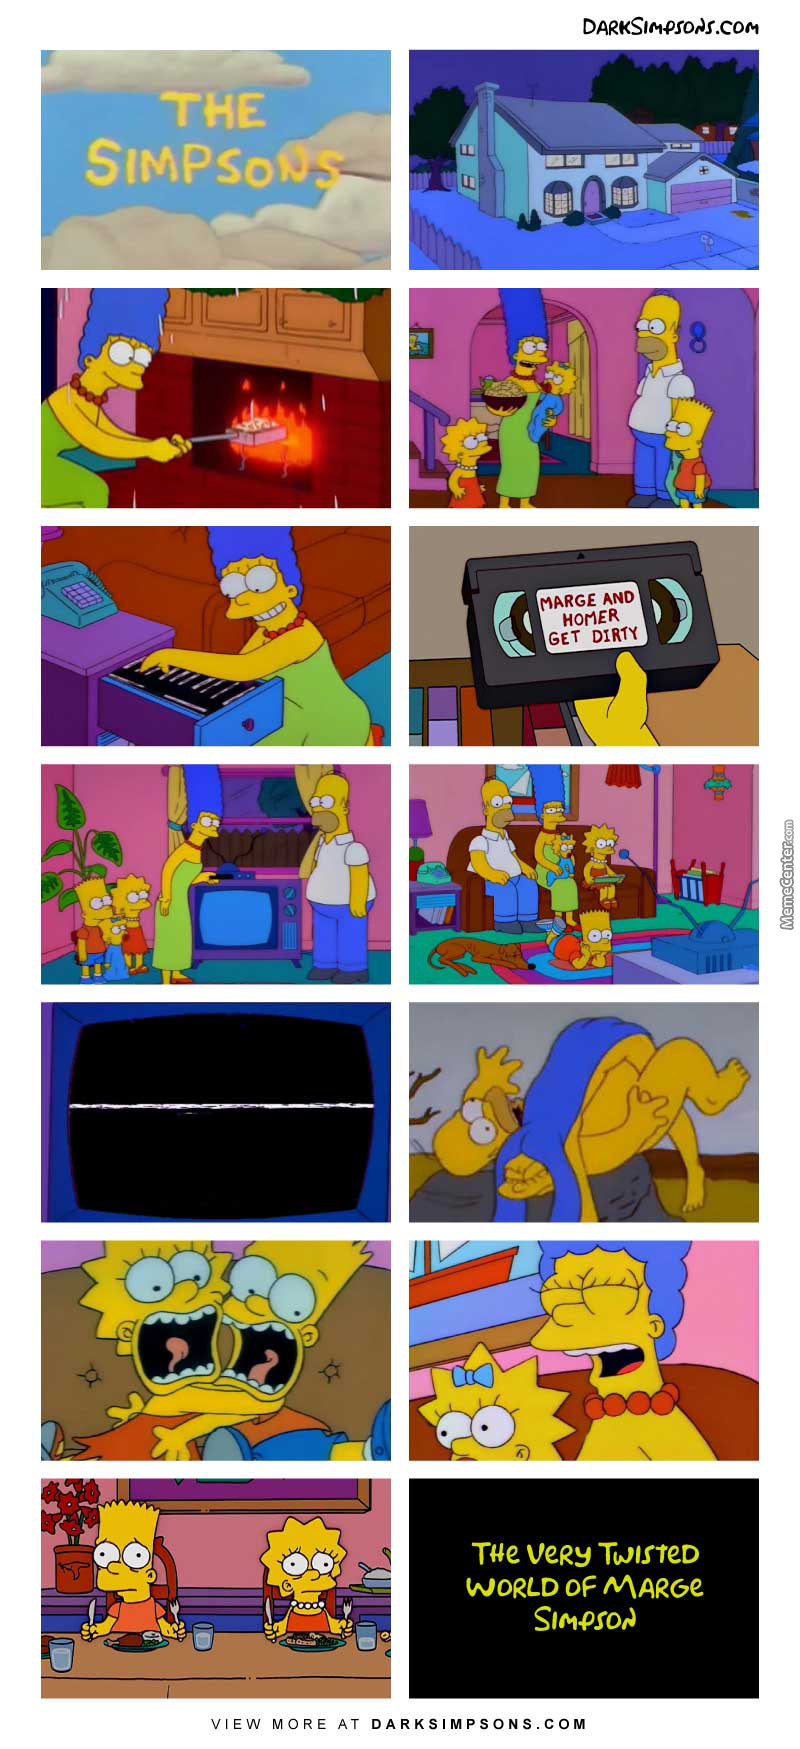 Marge: You Should Listen To Your Heart, And Not The Voices In Your Head.